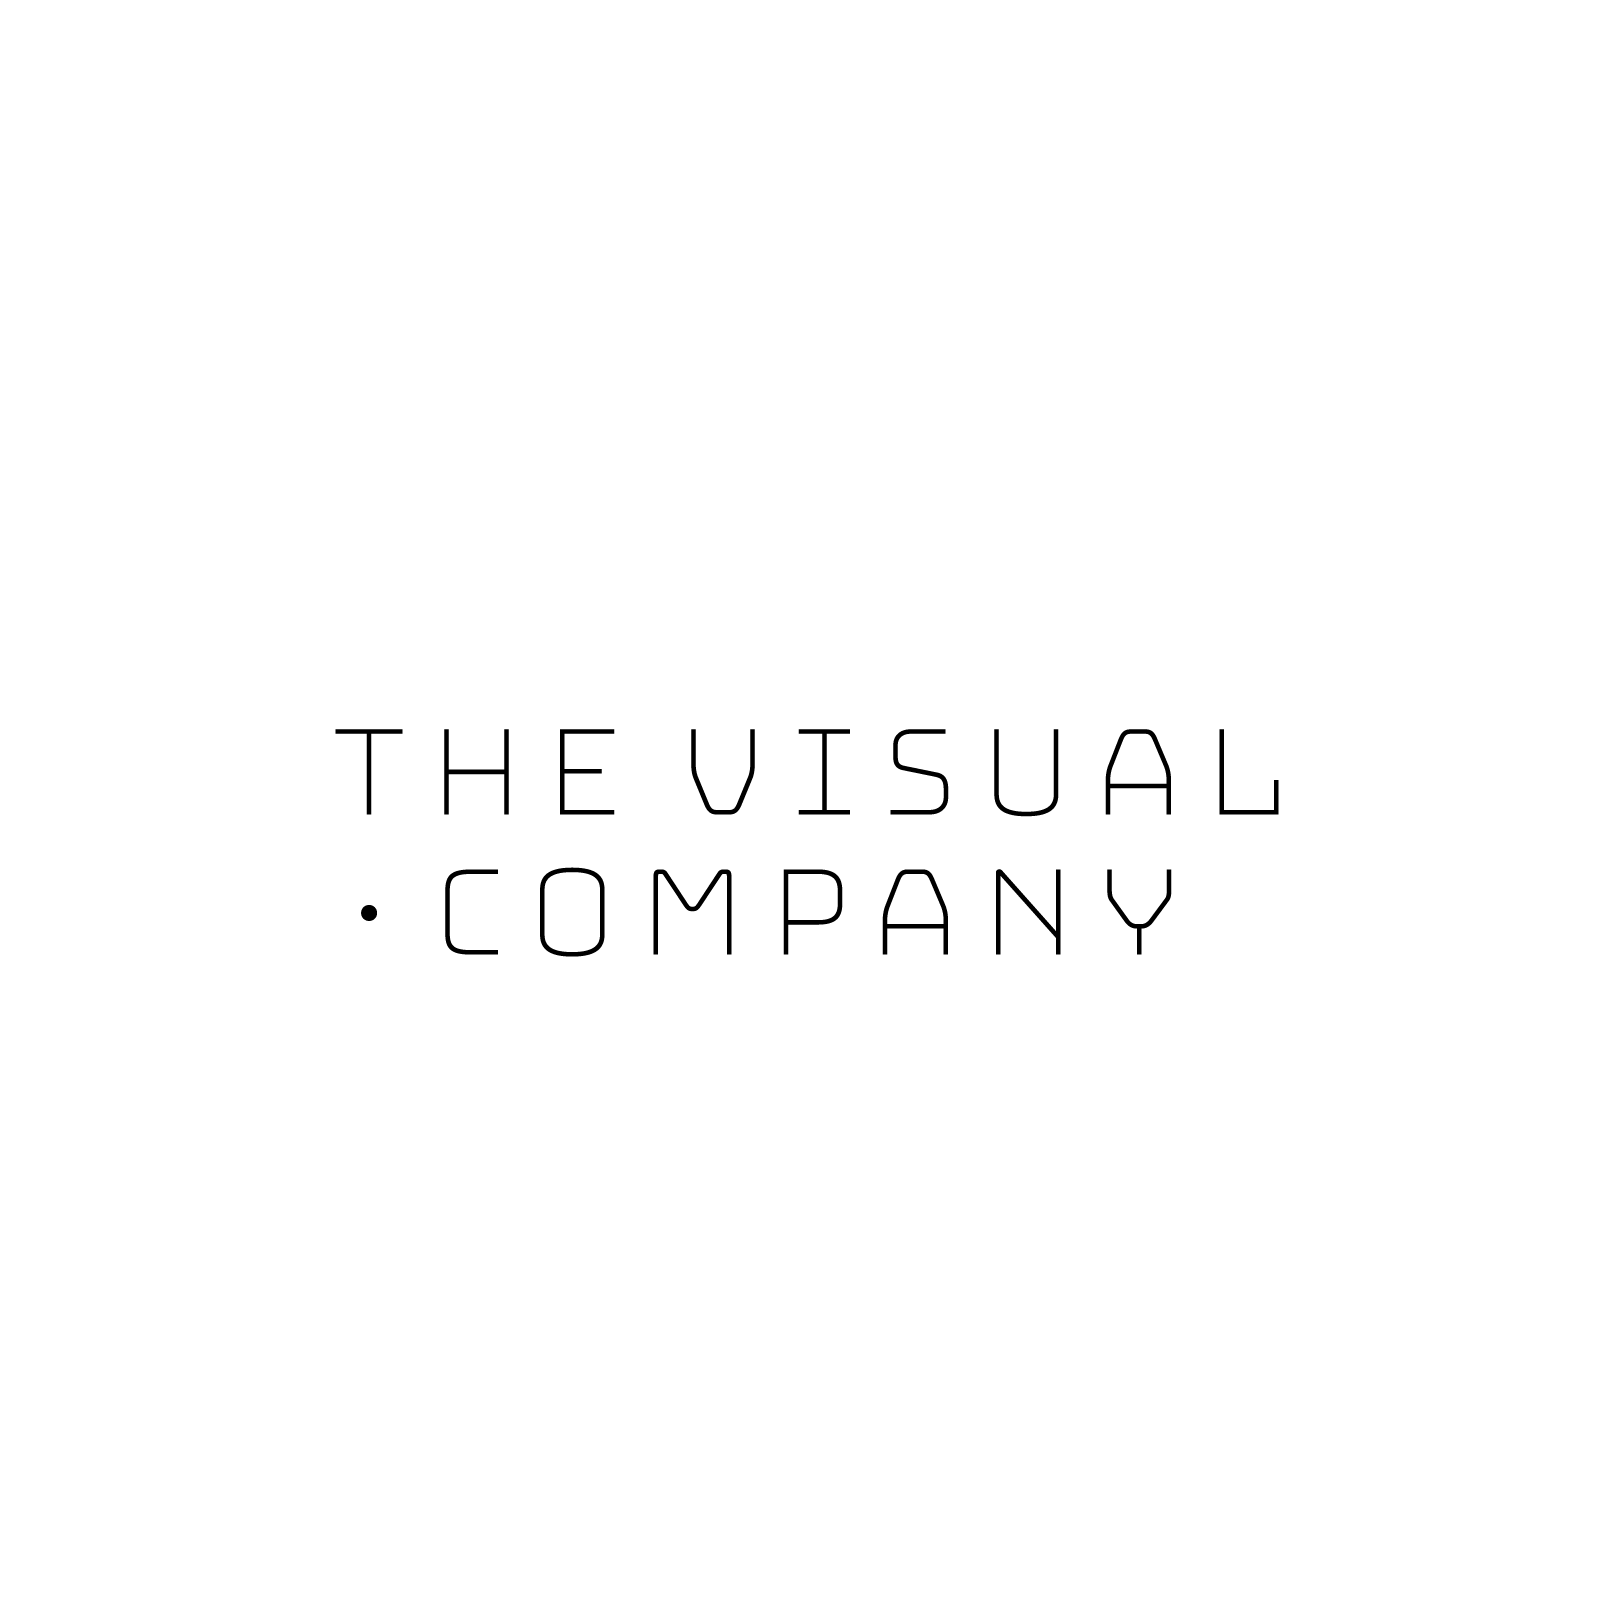 The Visual.Company